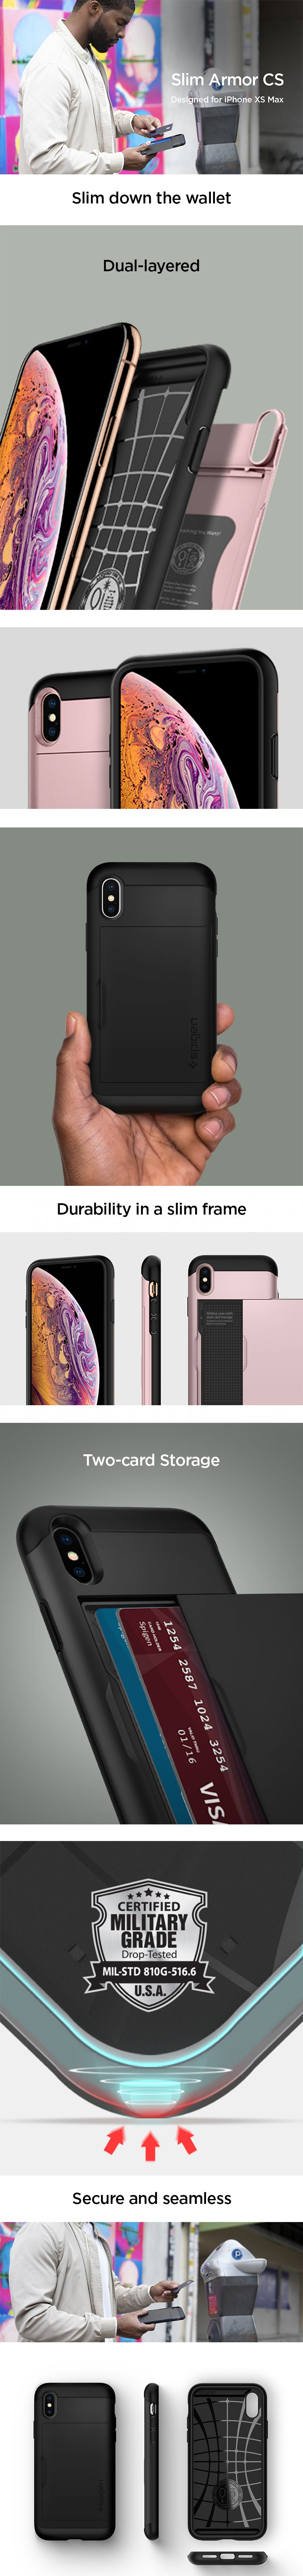 half off 19f23 3a4b8 iPhone XS Max Case Slim Armor CS – Spigen Inc